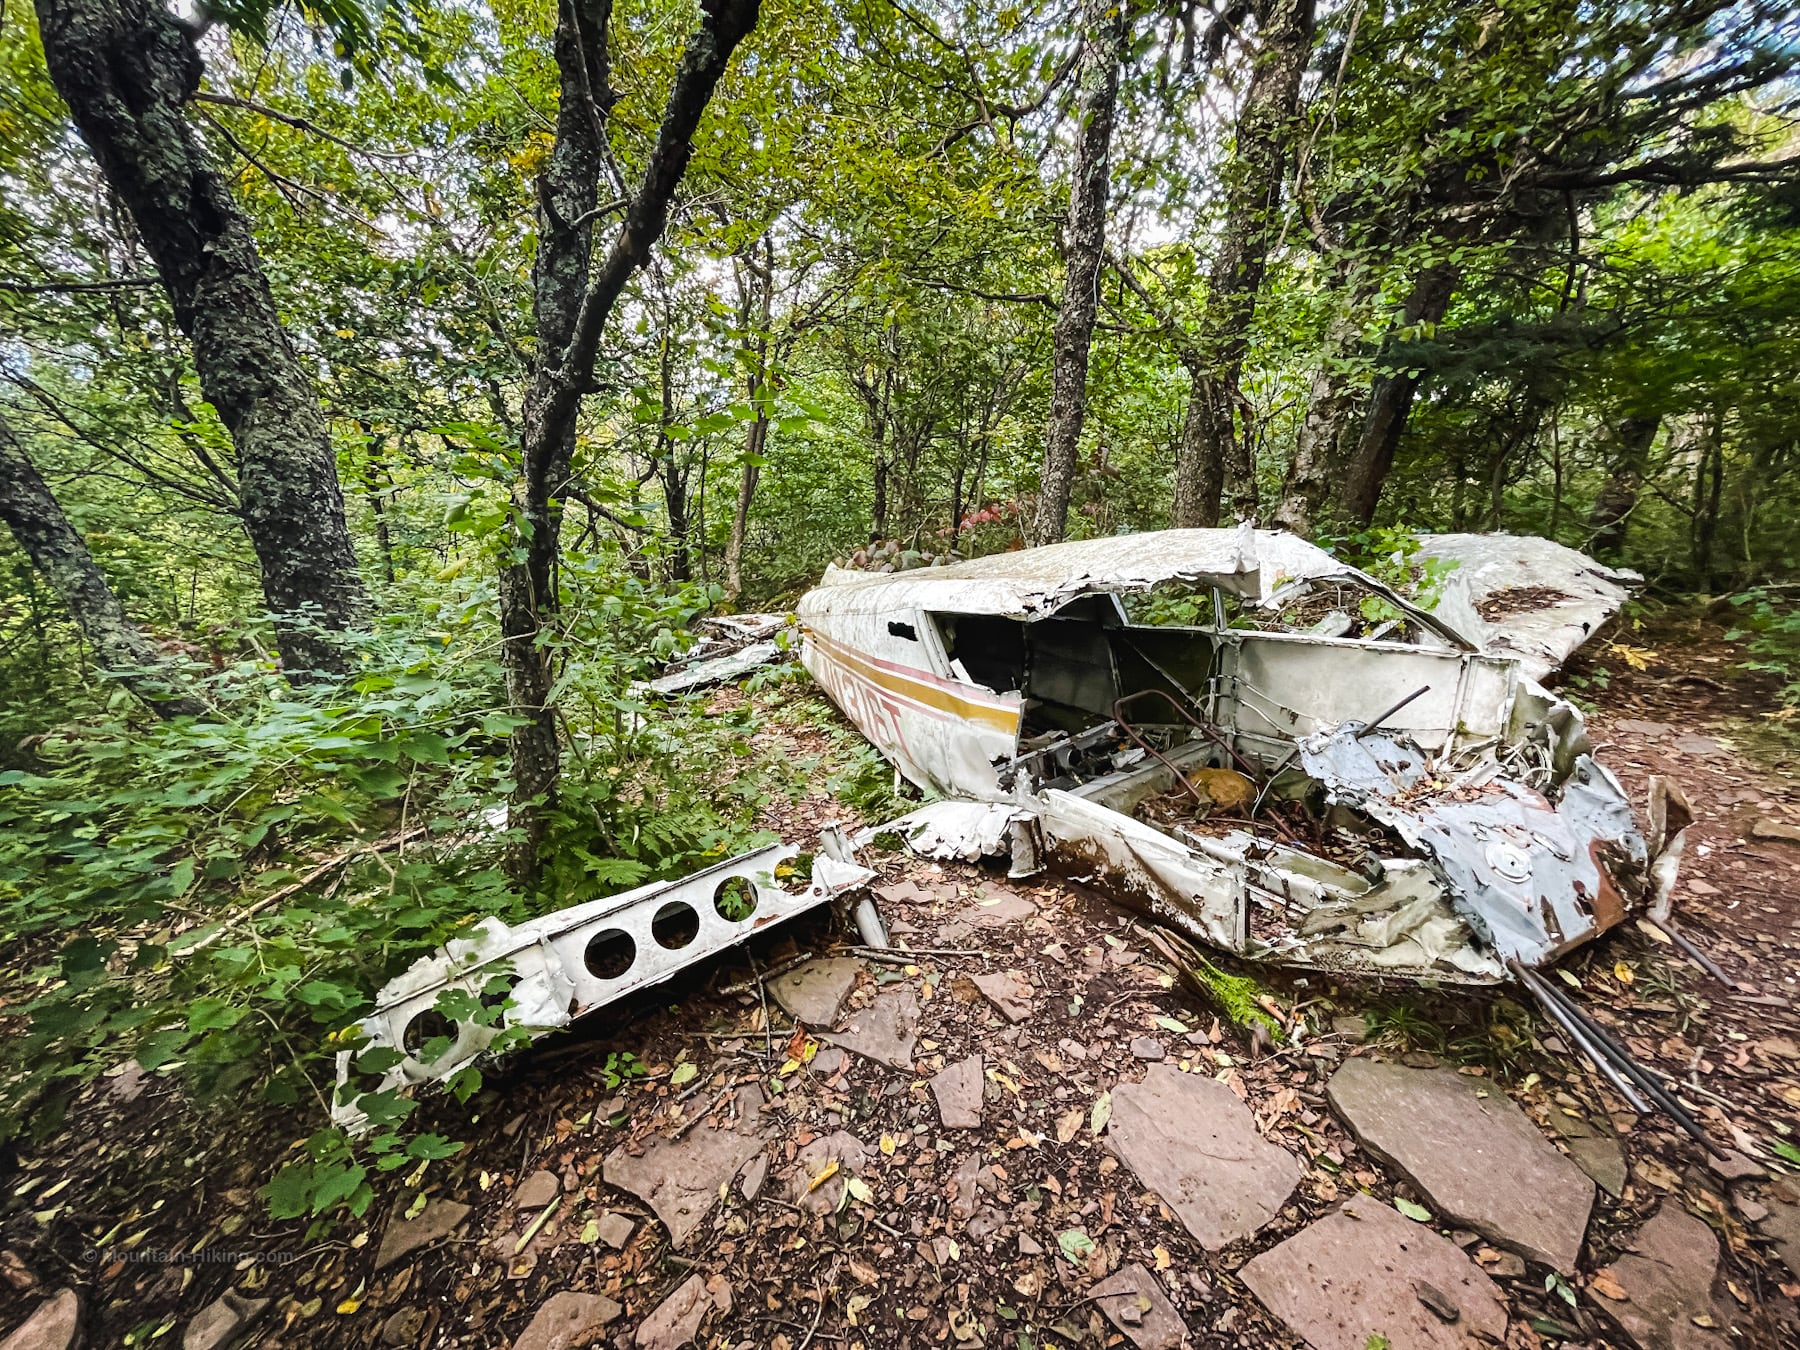 stoppel point plane crash in woods